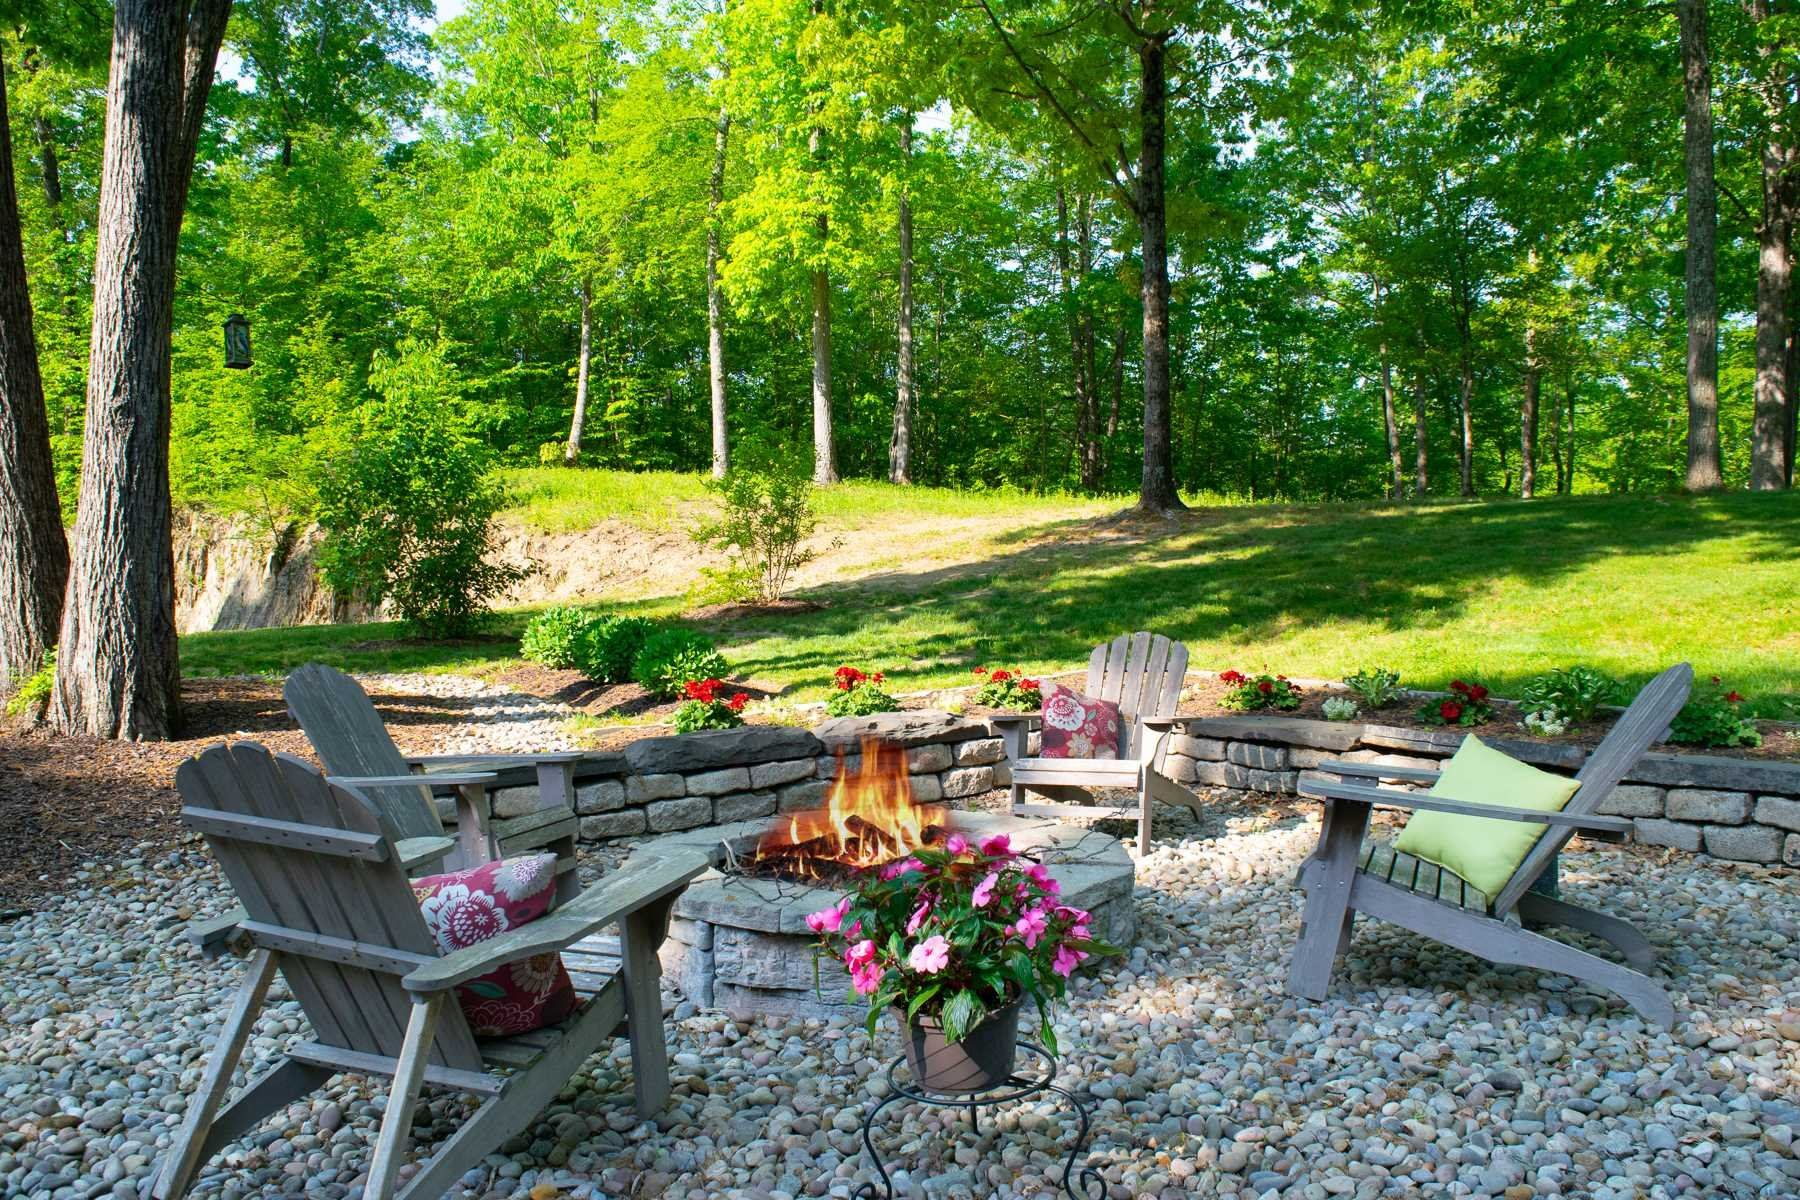 14 FOREST BROOK LN, Hyde Park, NY 12538 - #: 399378